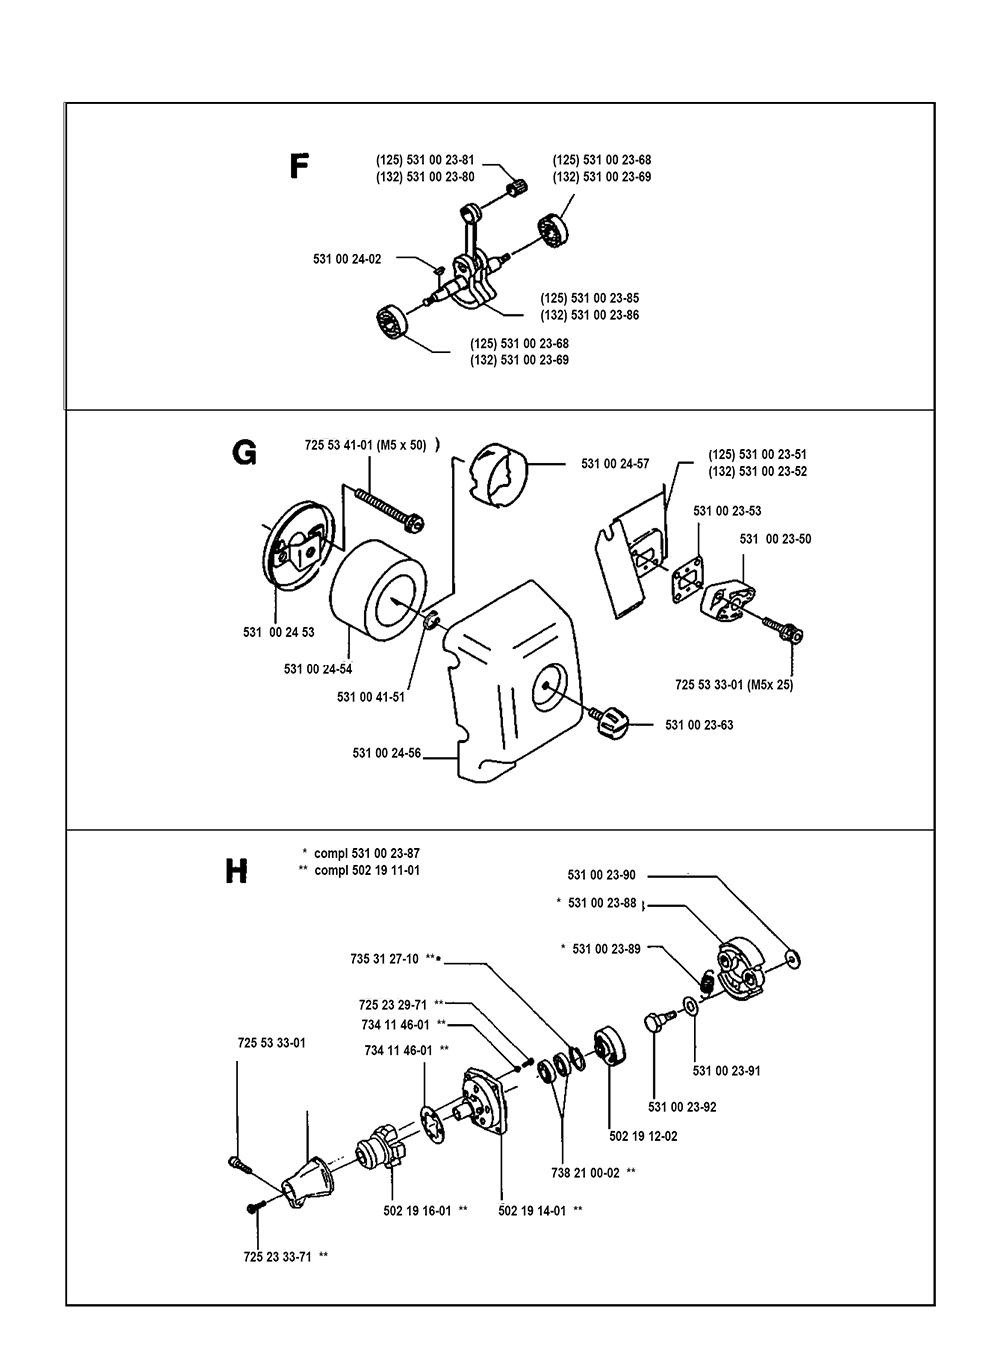 132 R-(I9300002)-Husqvarna-PB-2Break Down